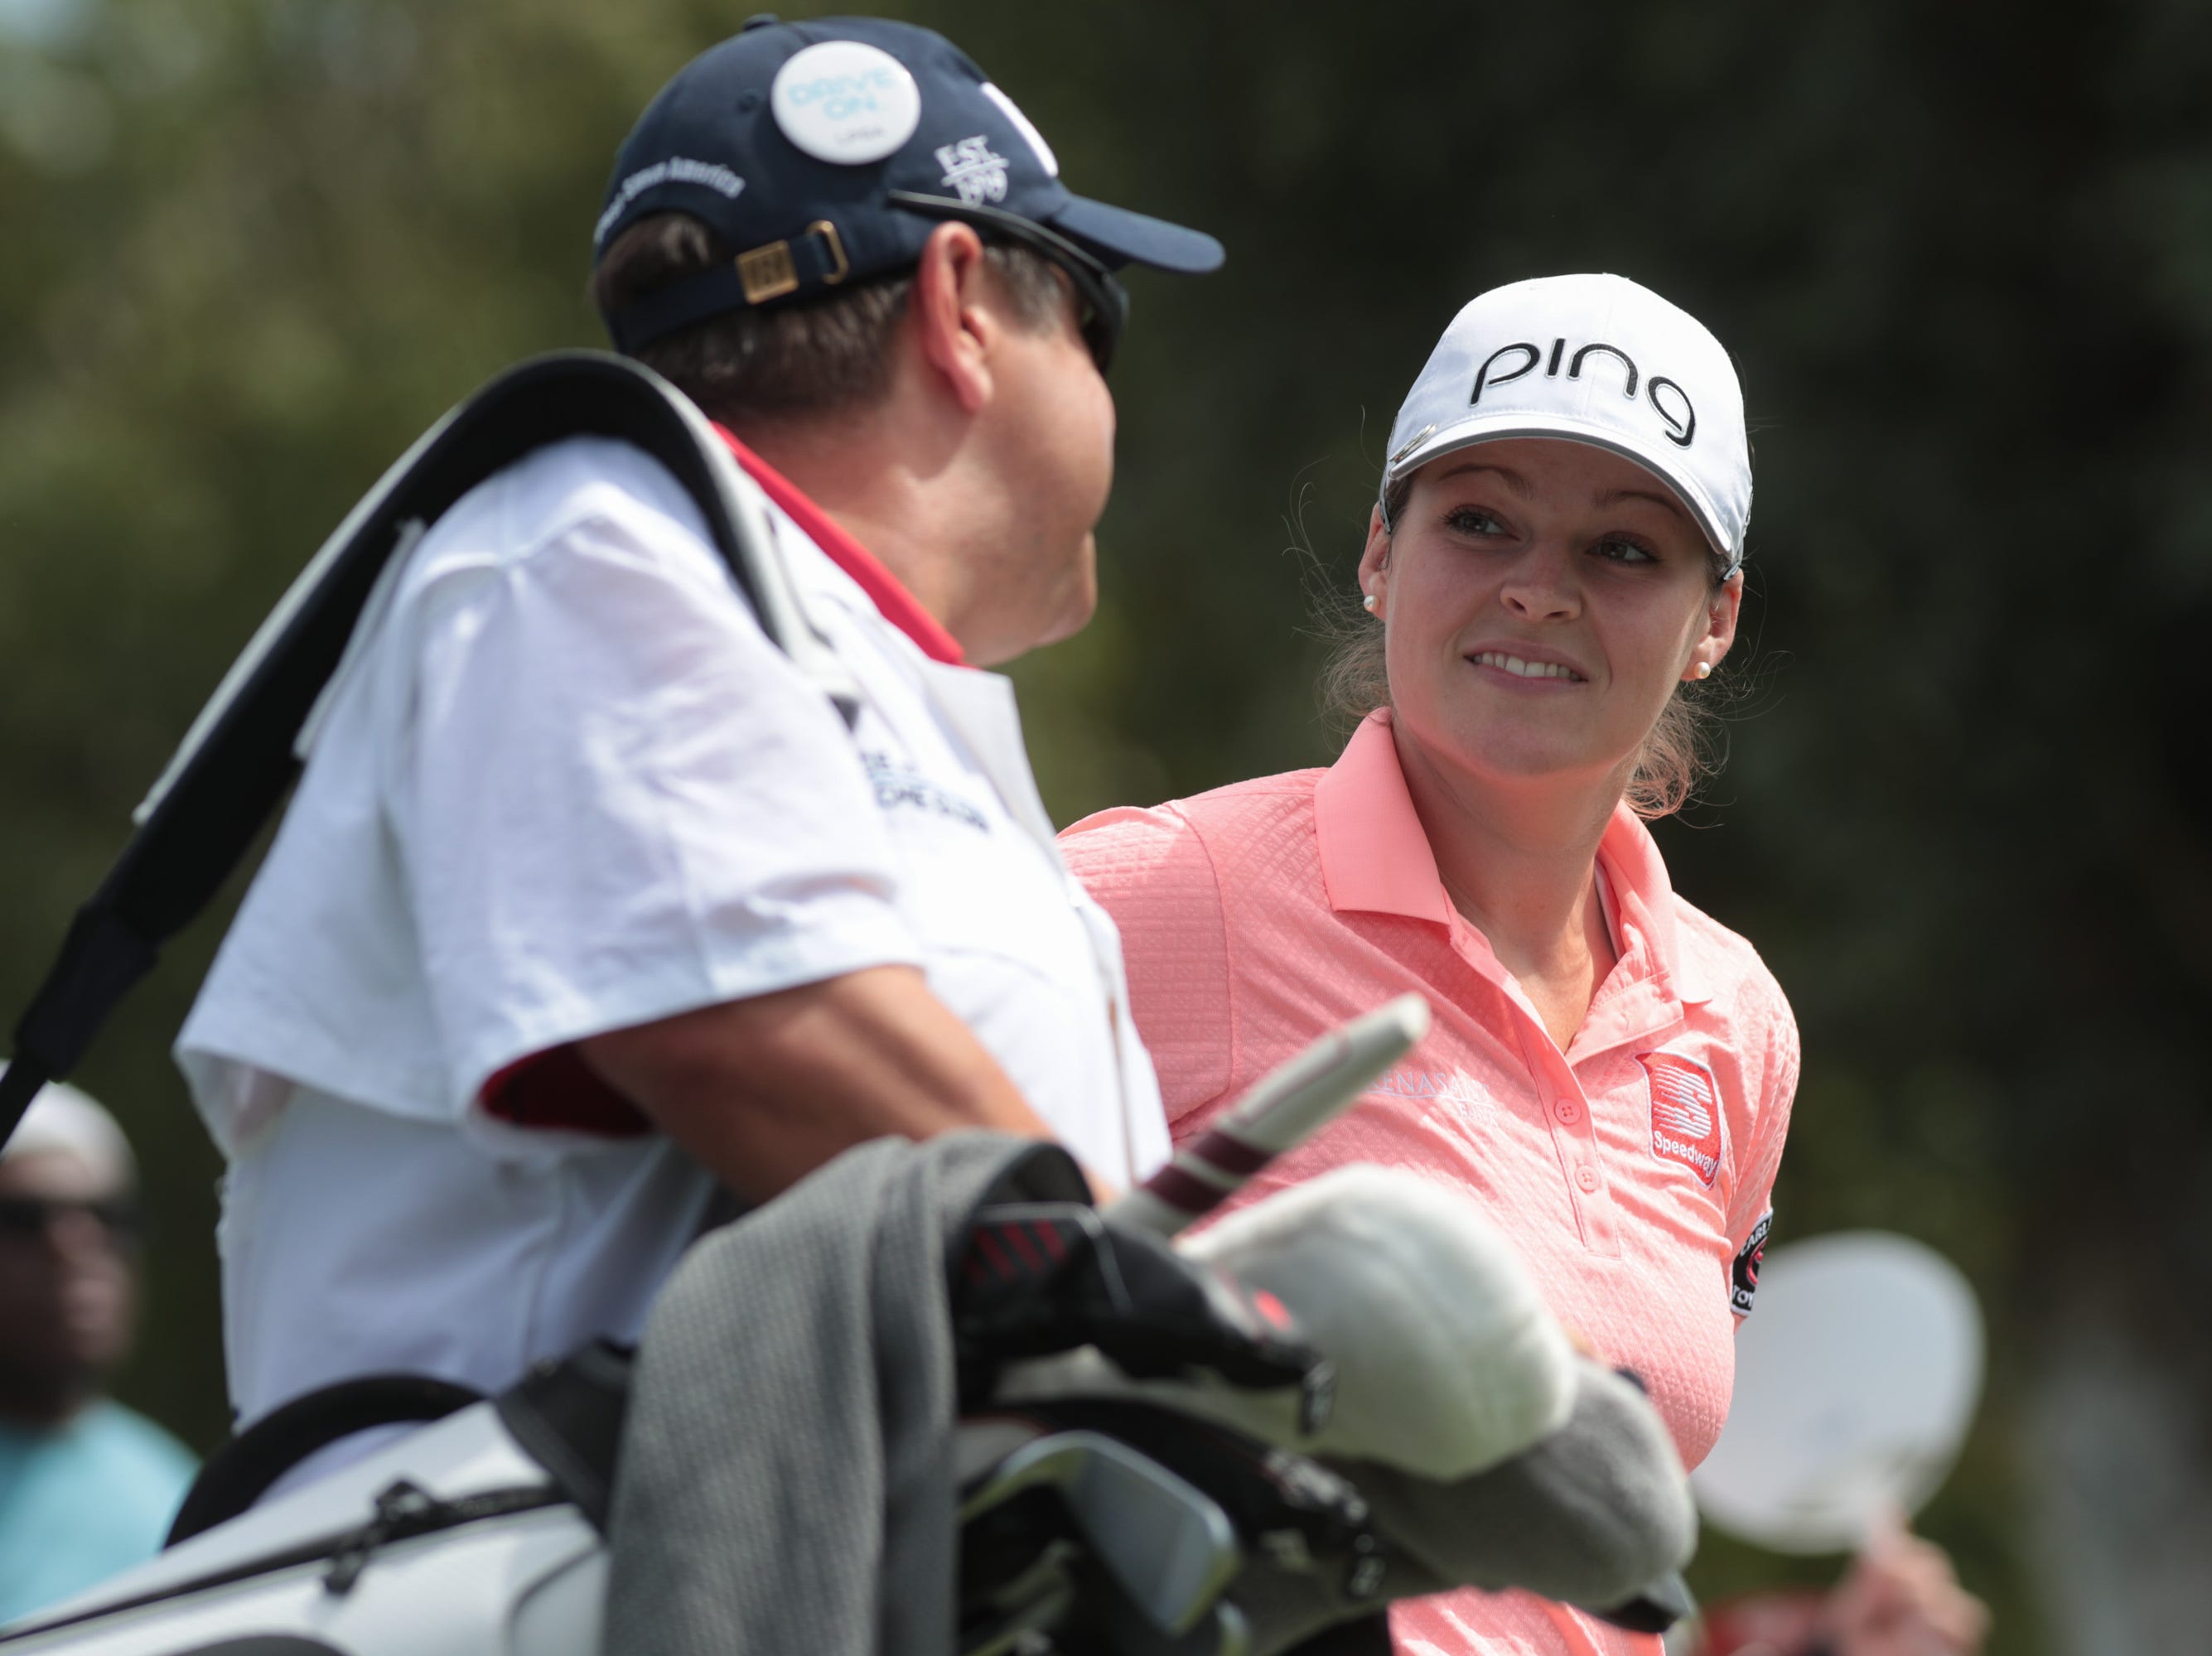 Ally McDonald talks to her caddie after teeing off on the first hole of the Dinah Shore Course at the ANA Inspiration, Rancho Mirage, Calif., April 6, 2019.